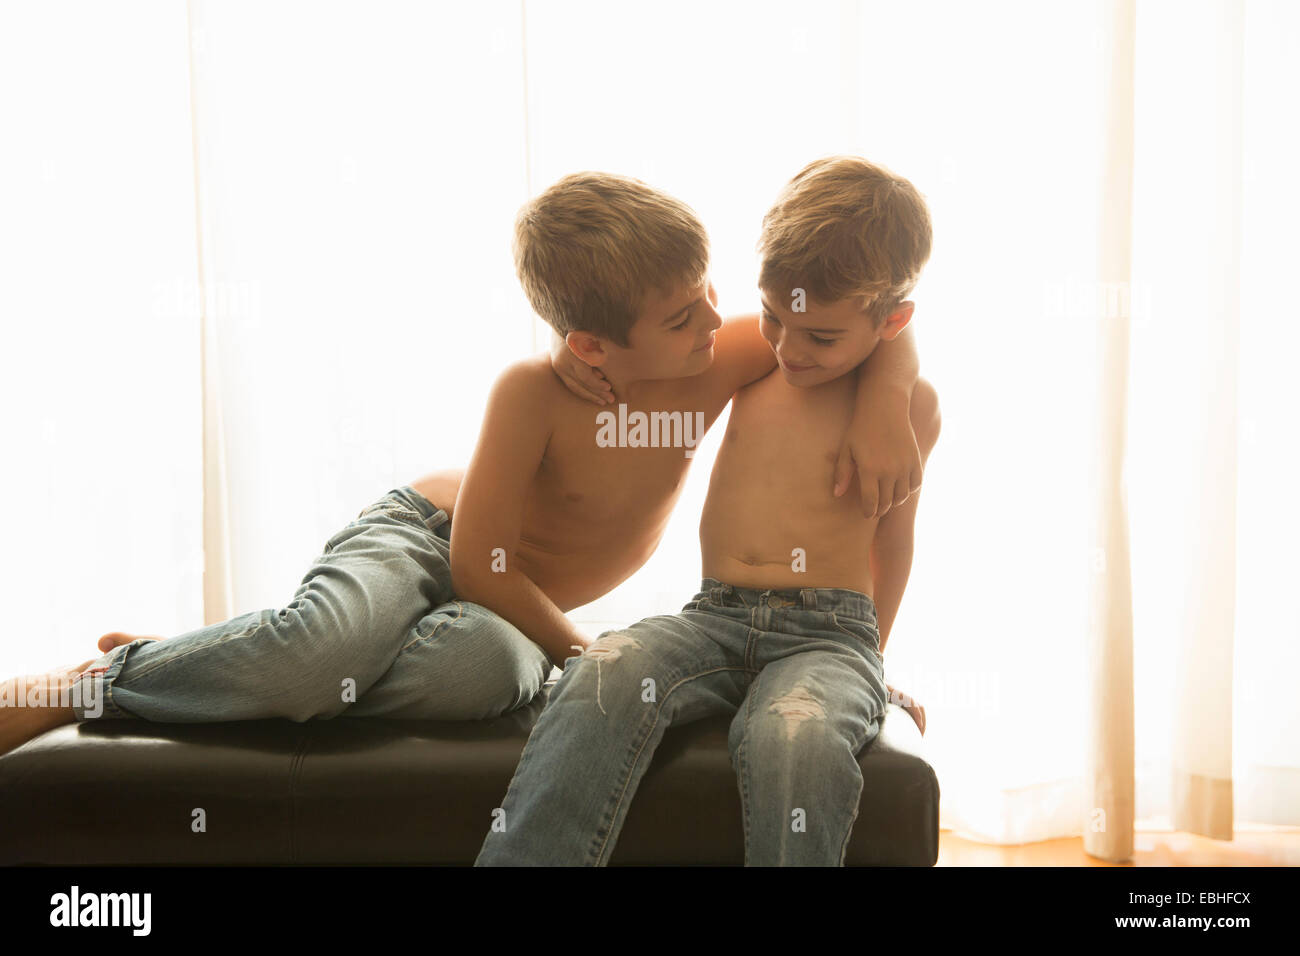 Brothers bonding at home - Stock Image